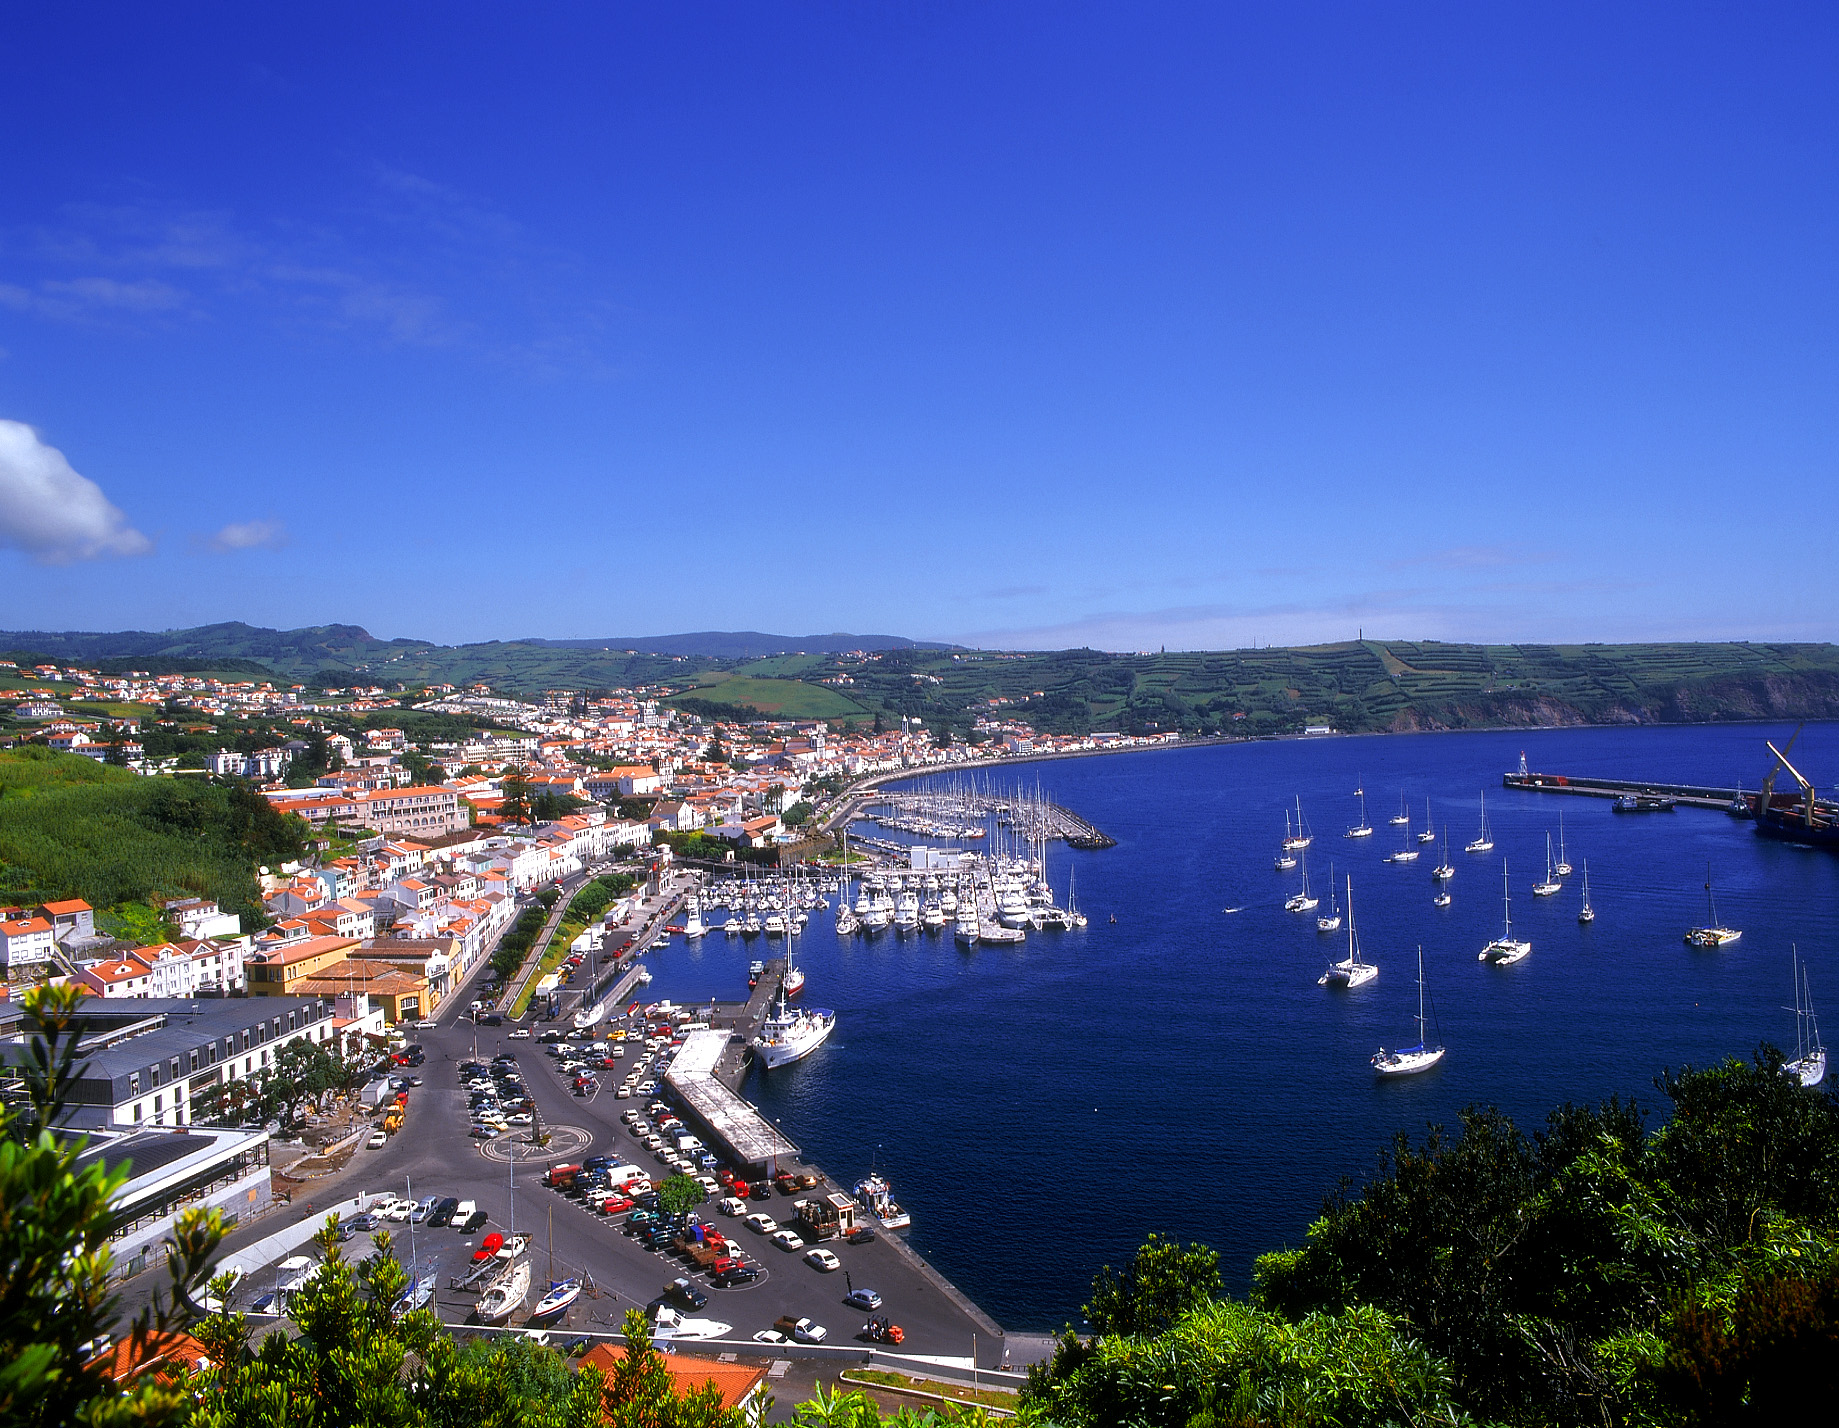 The port, Horta, Azores